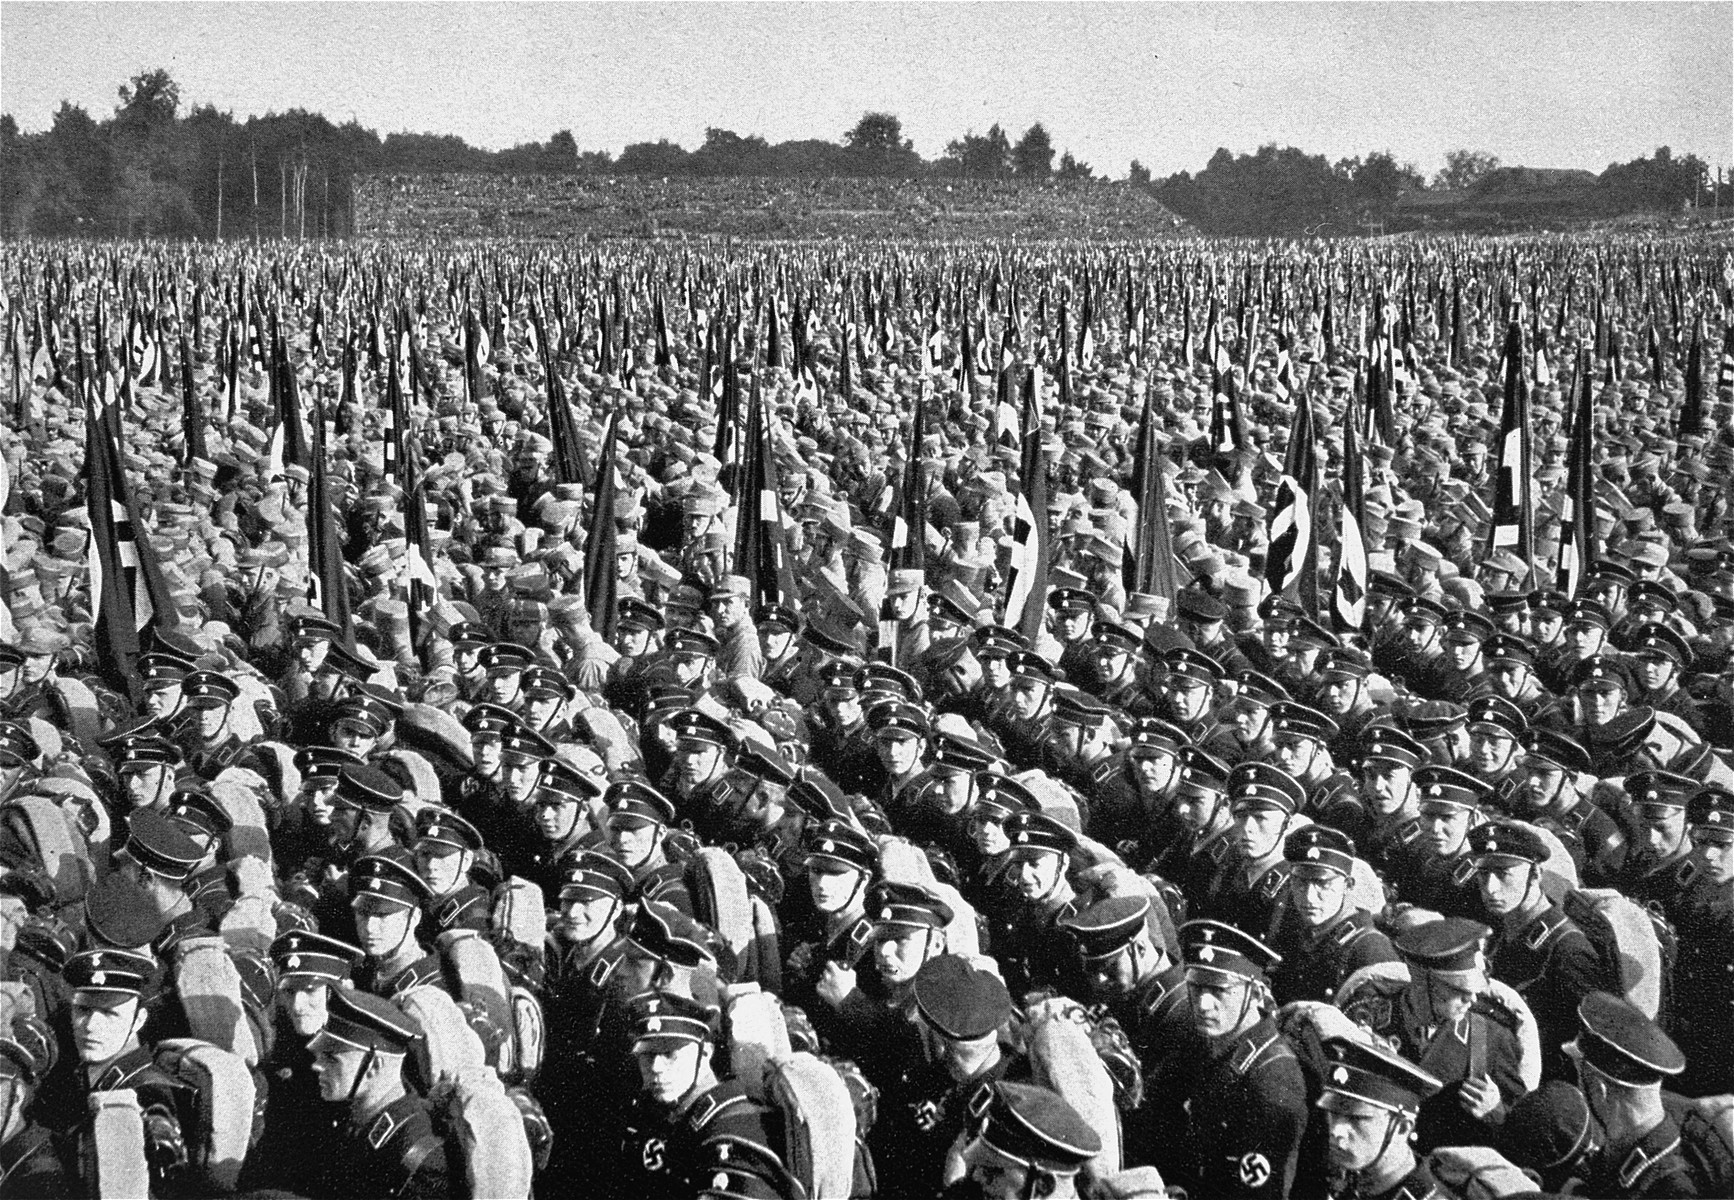 Members of the SA and SS stand in formation during  Reichsparteitag (Reich Party Day) ceremonies in Nuremberg.